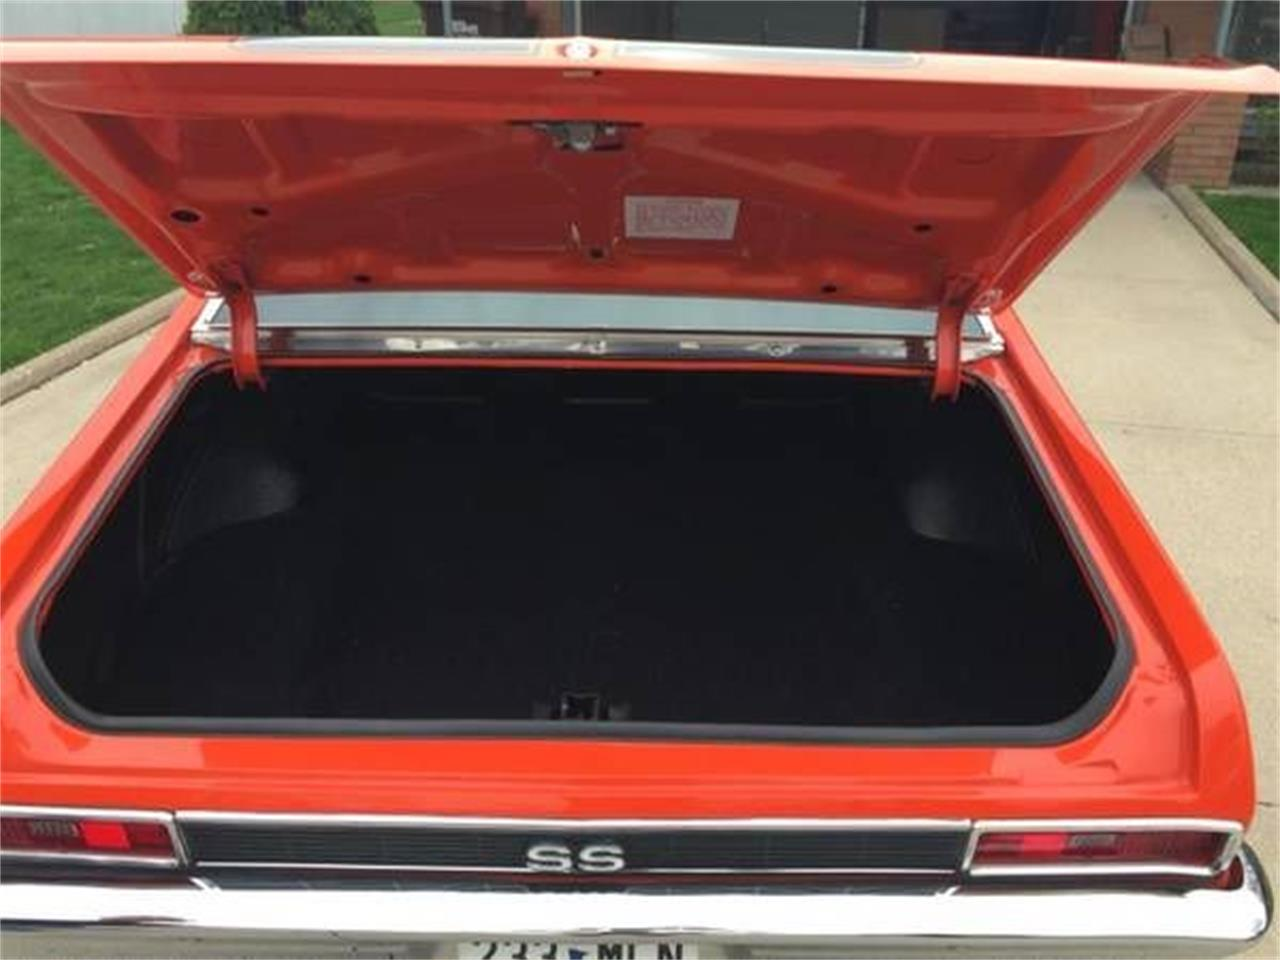 Large Picture of 1970 Chevrolet Nova located in Michigan - $34,995.00 - NZWN